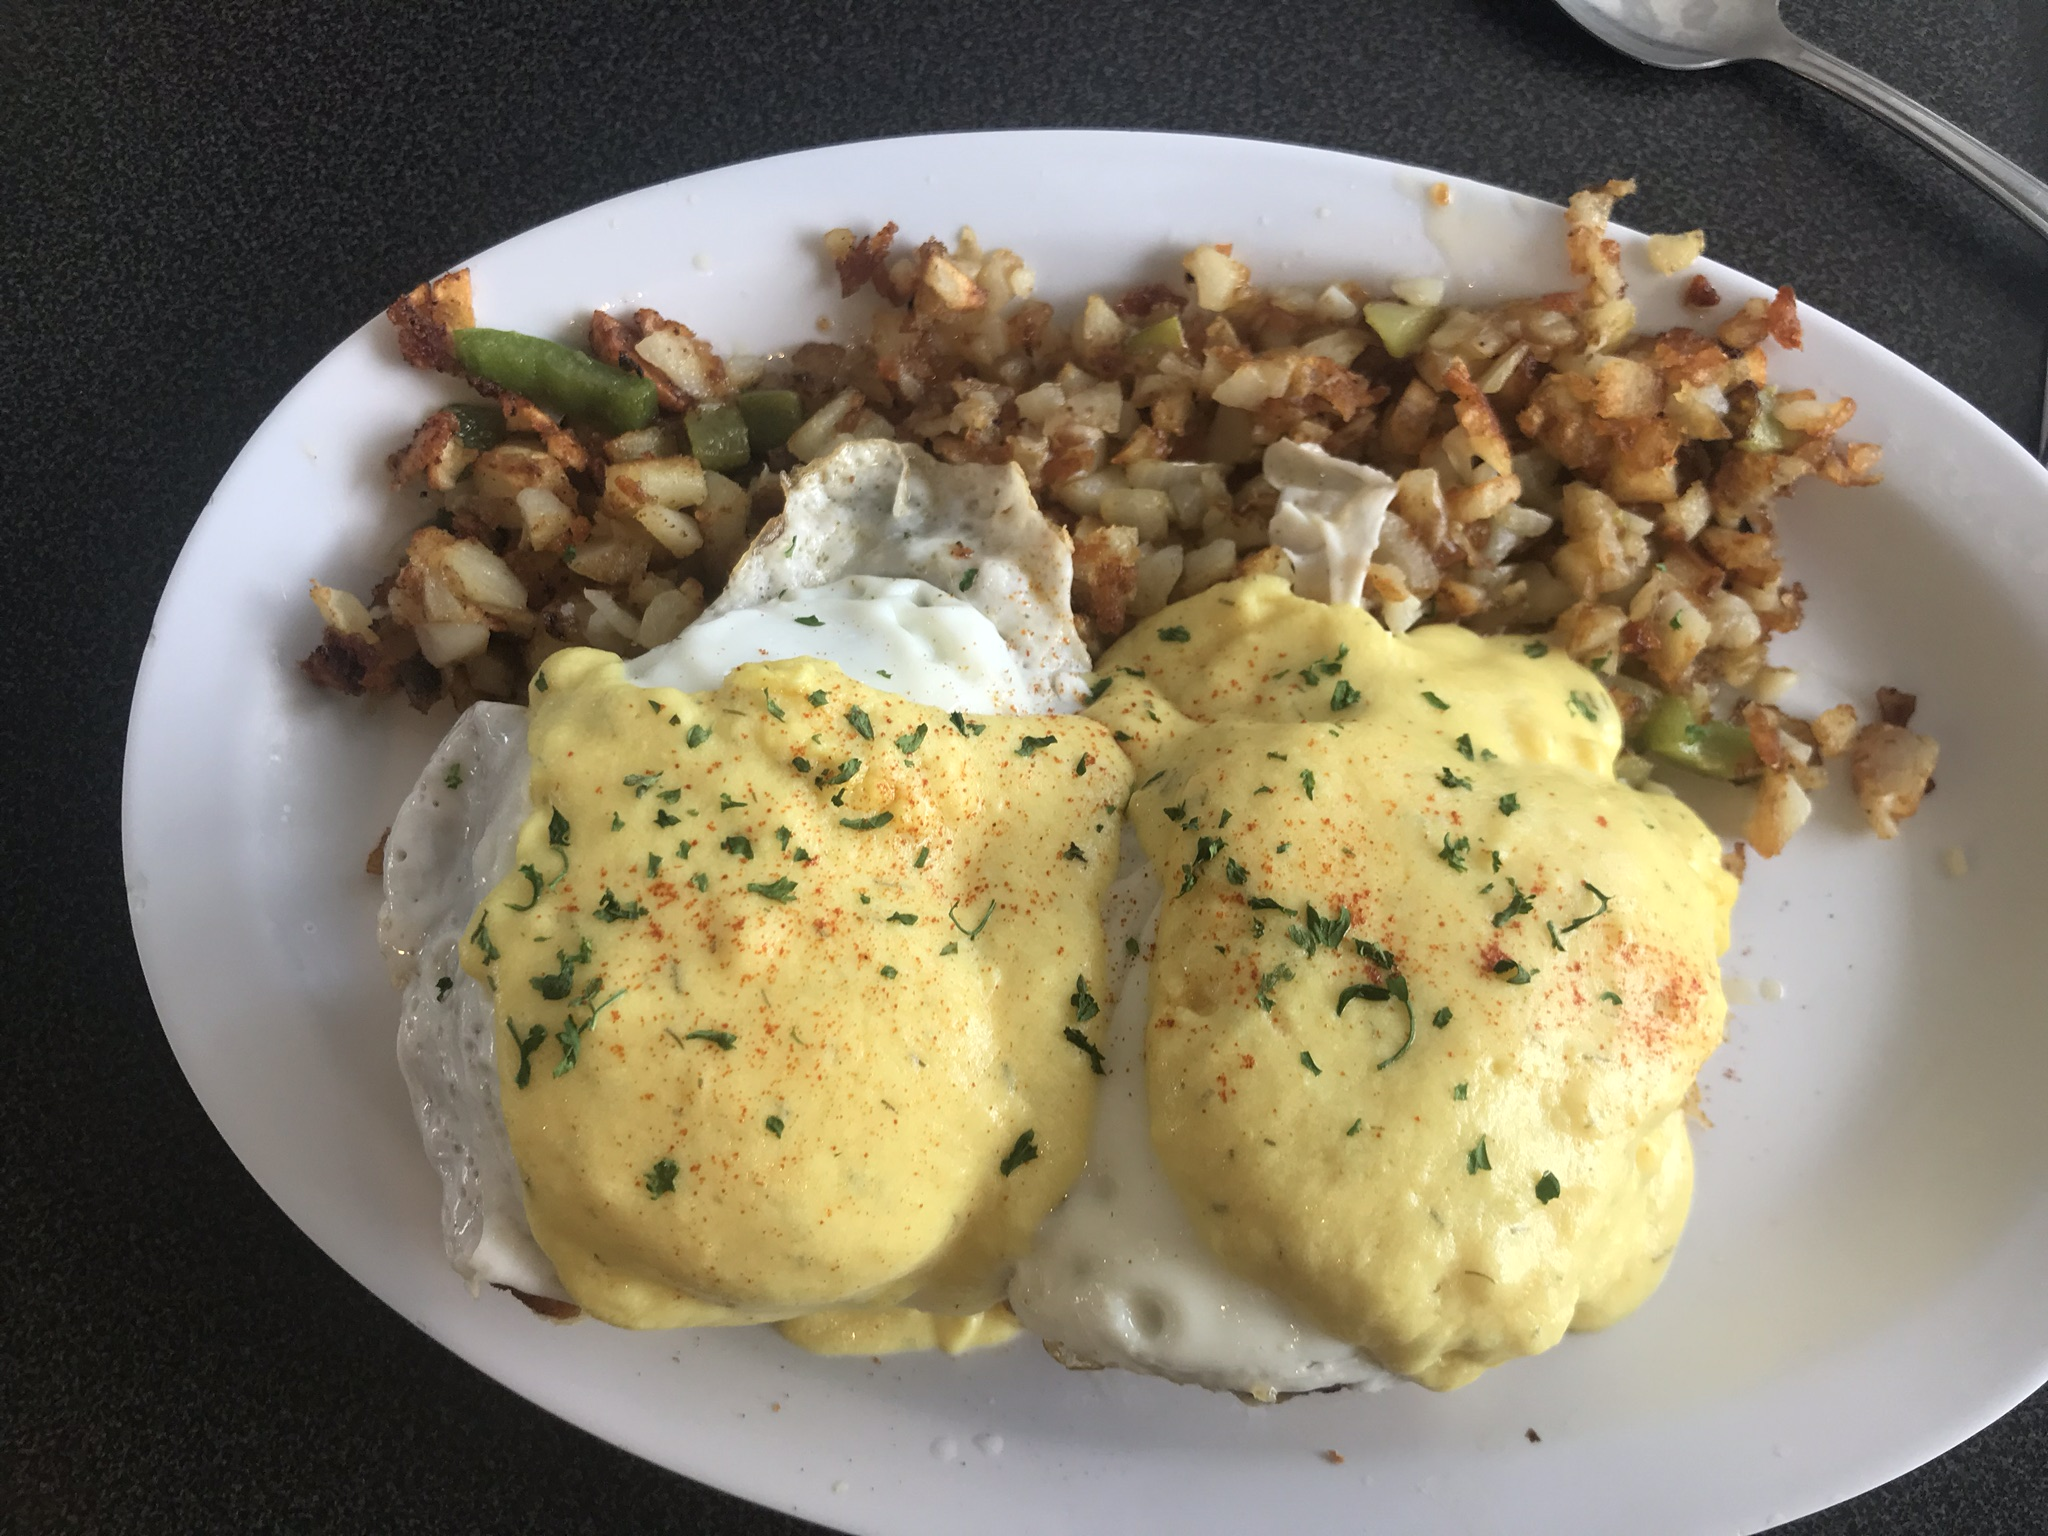 Breakfast at Just Joels in Kennewick – June 23 2019